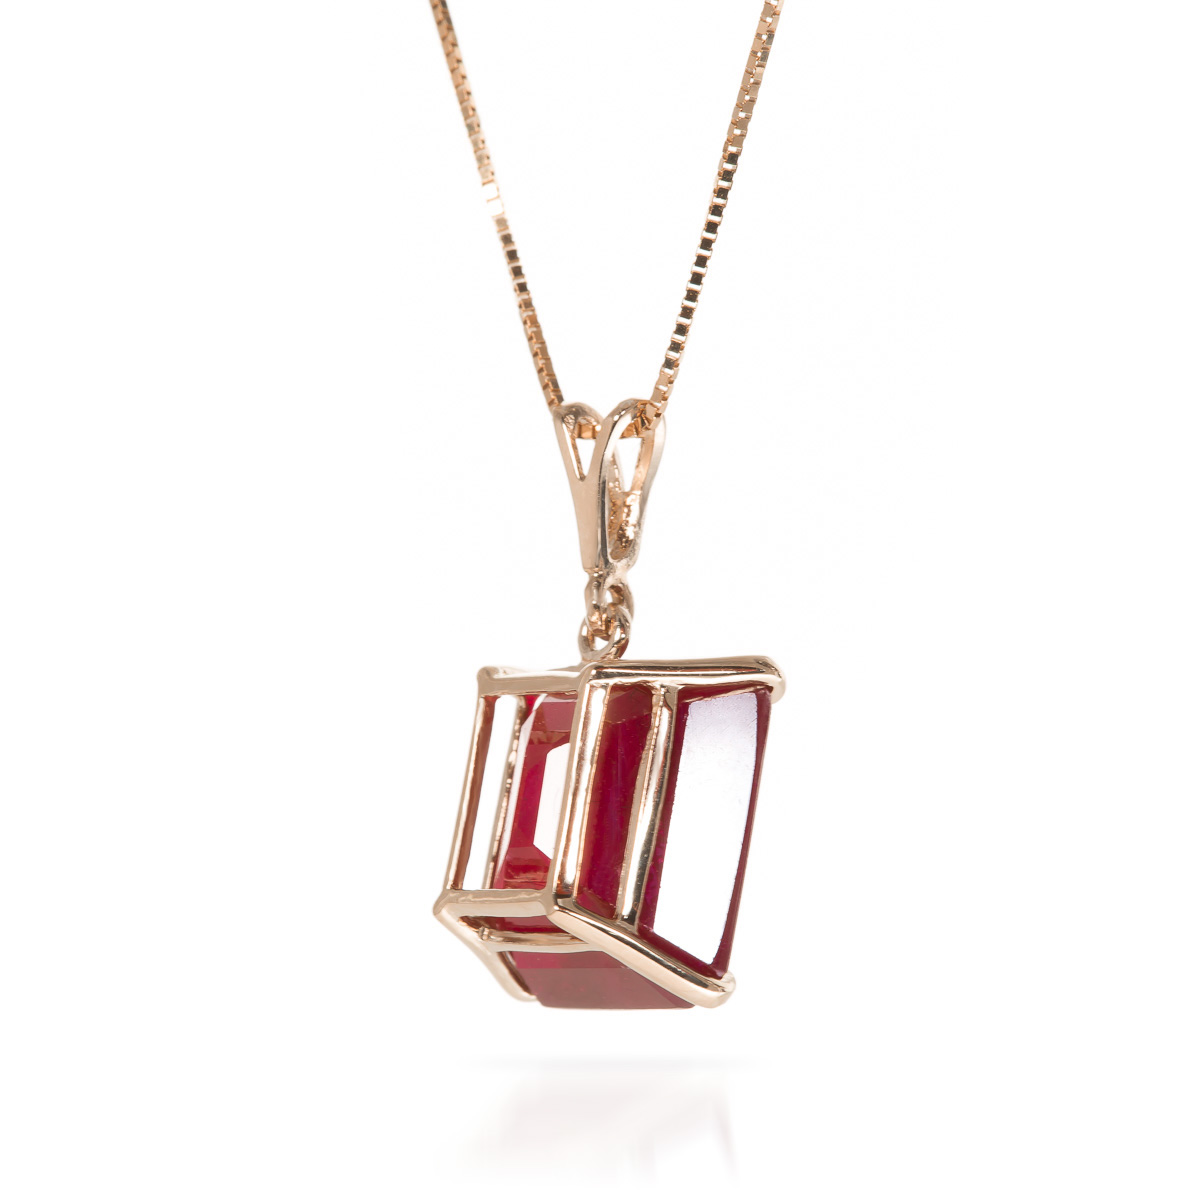 Ruby Pendant Necklace 6.5ct in 9ct Rose Gold